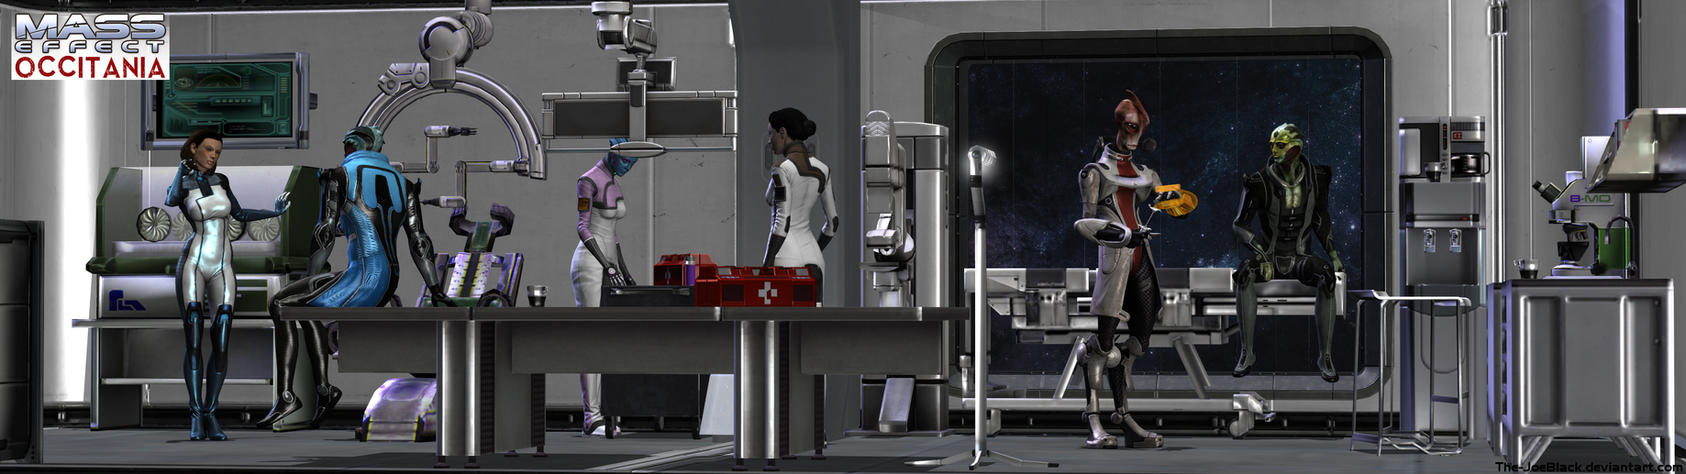 Mass Effect - Occitania: The Medlab by JoesHouseOfArt